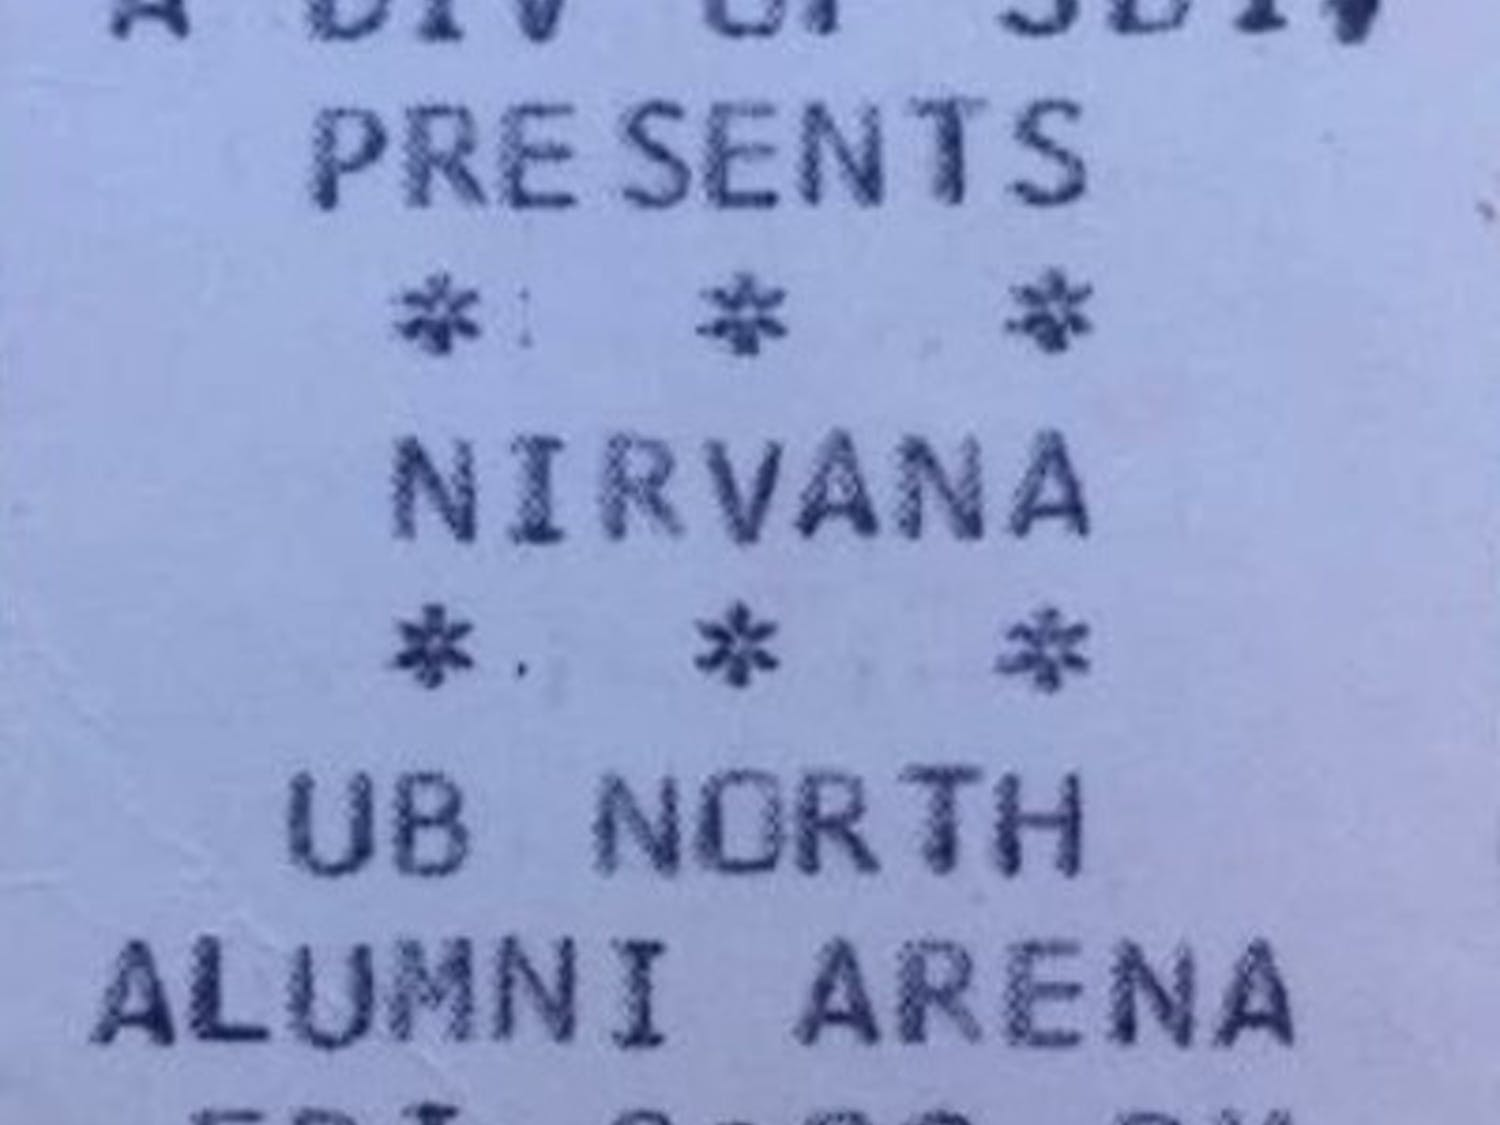 Courtesy of Cherie Chase/ A ticket stub from Nirvana's 1993 Alumni Arena performance.